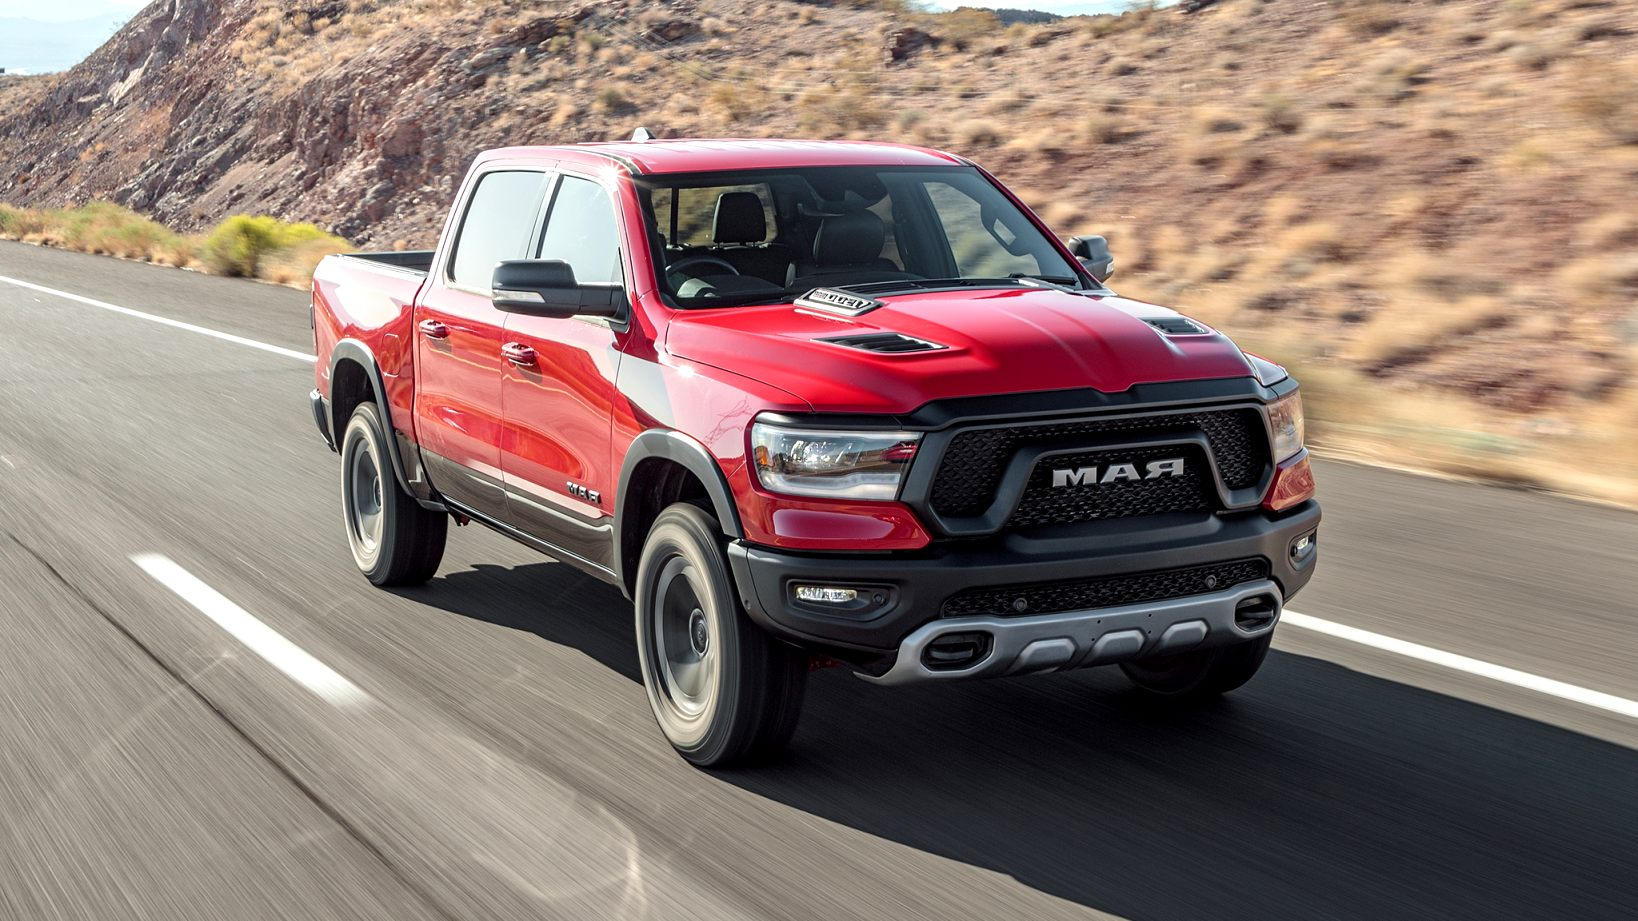 2020 dodge ecodiesel price Concept and Review